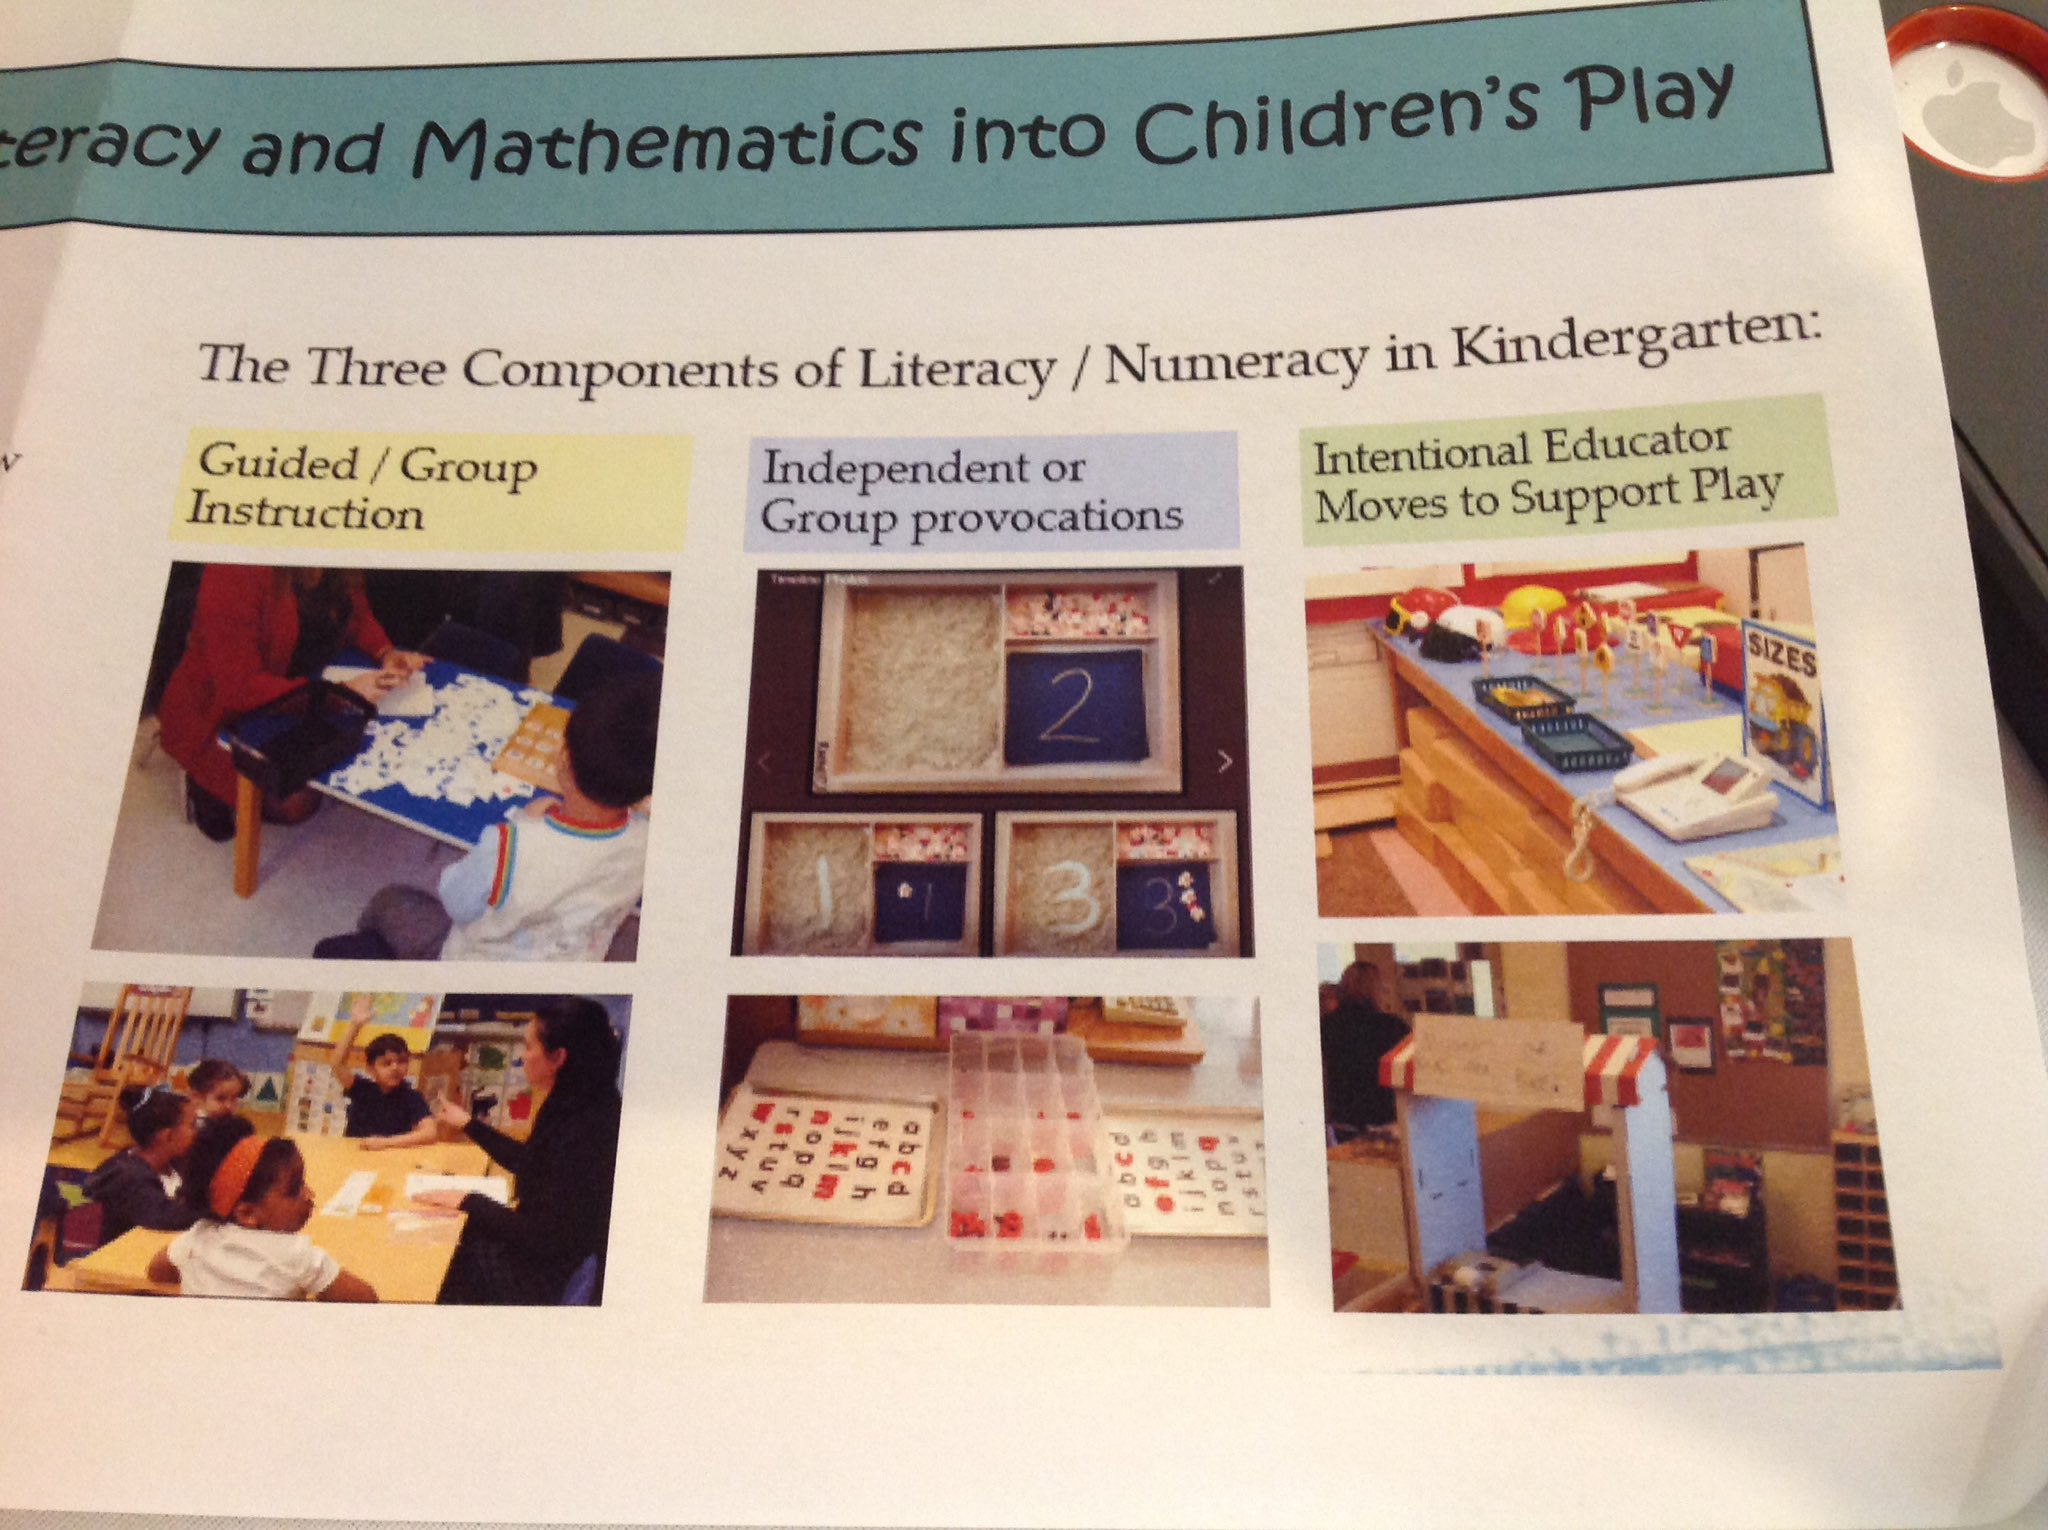 Literacy & numeracy - everywhere, so that Ss see themselves as readers, writers, mathematicians, scientists, builders & creators #ETFOpley https://t.co/iDrVuXvr1L